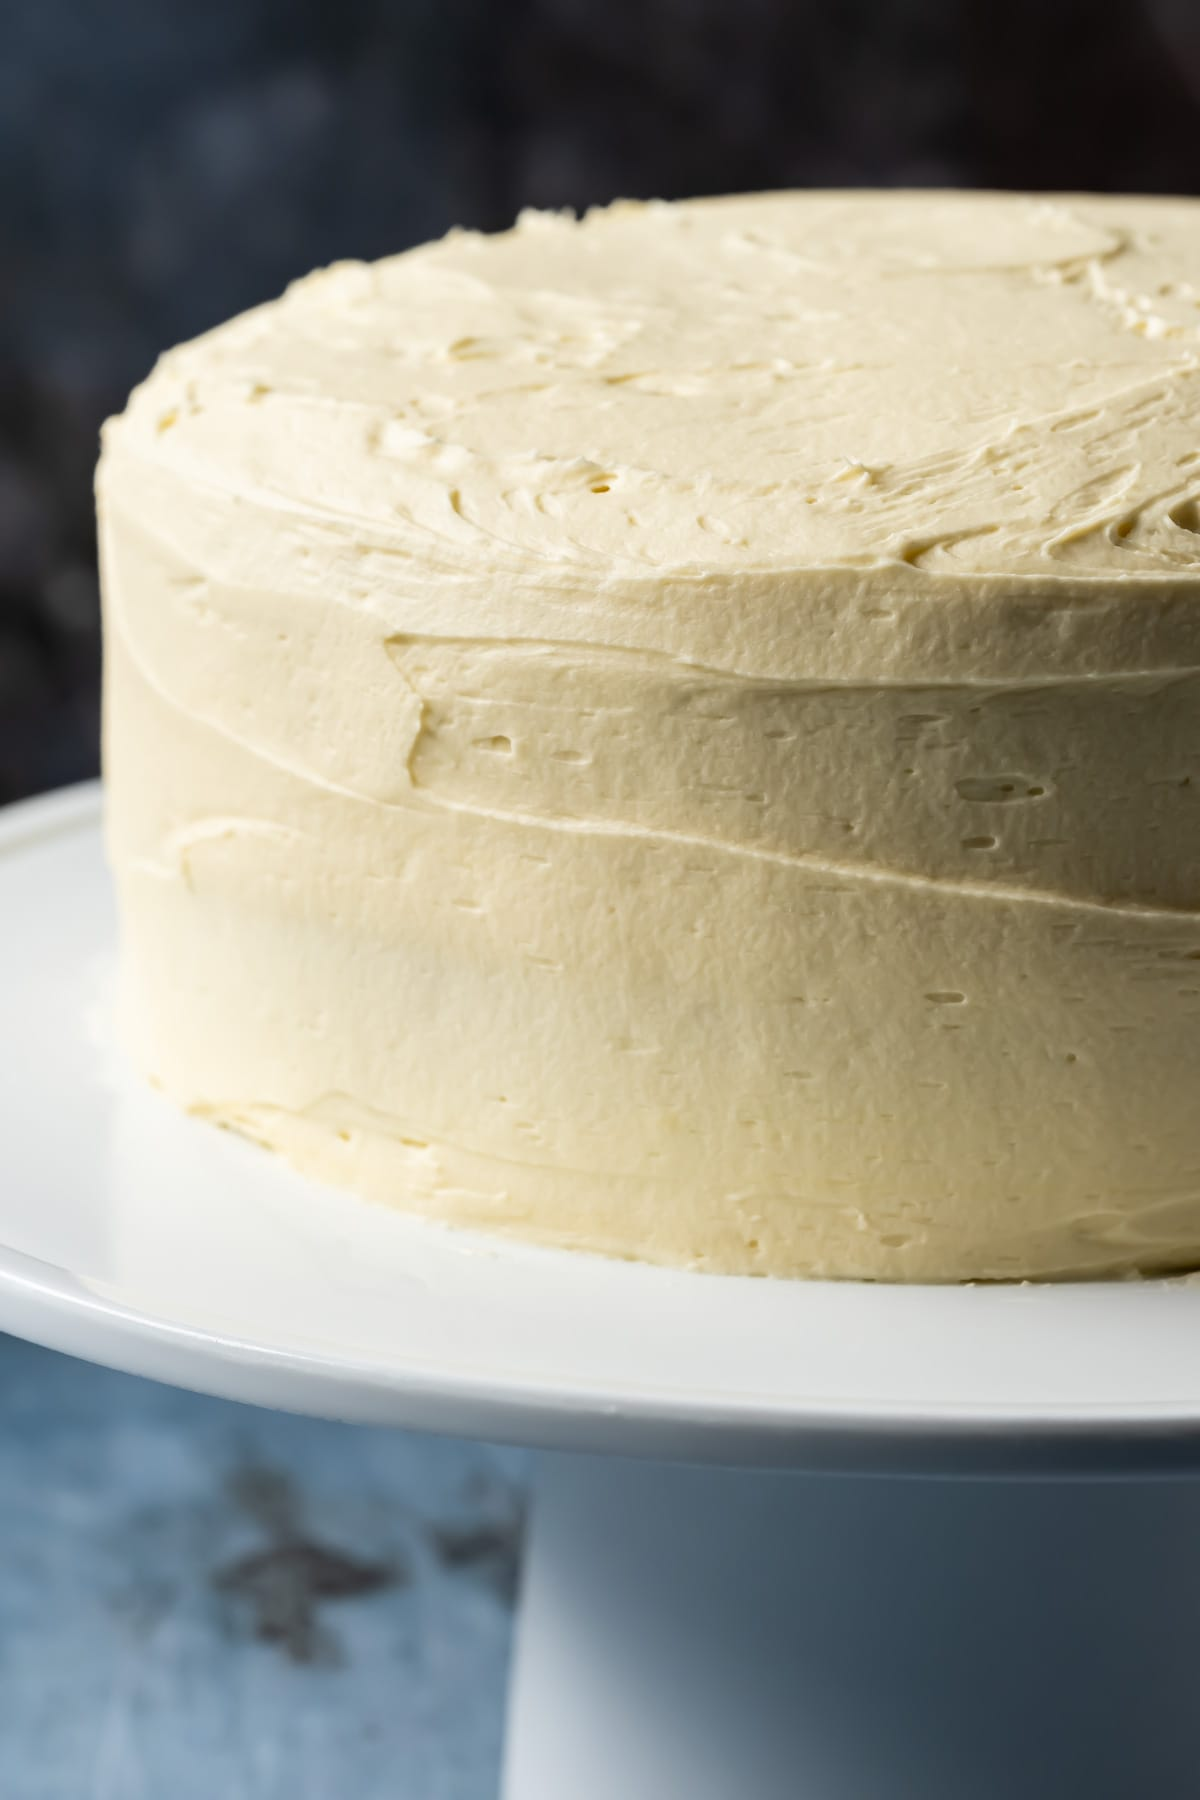 Frosted vanilla cake on a white cake stand.